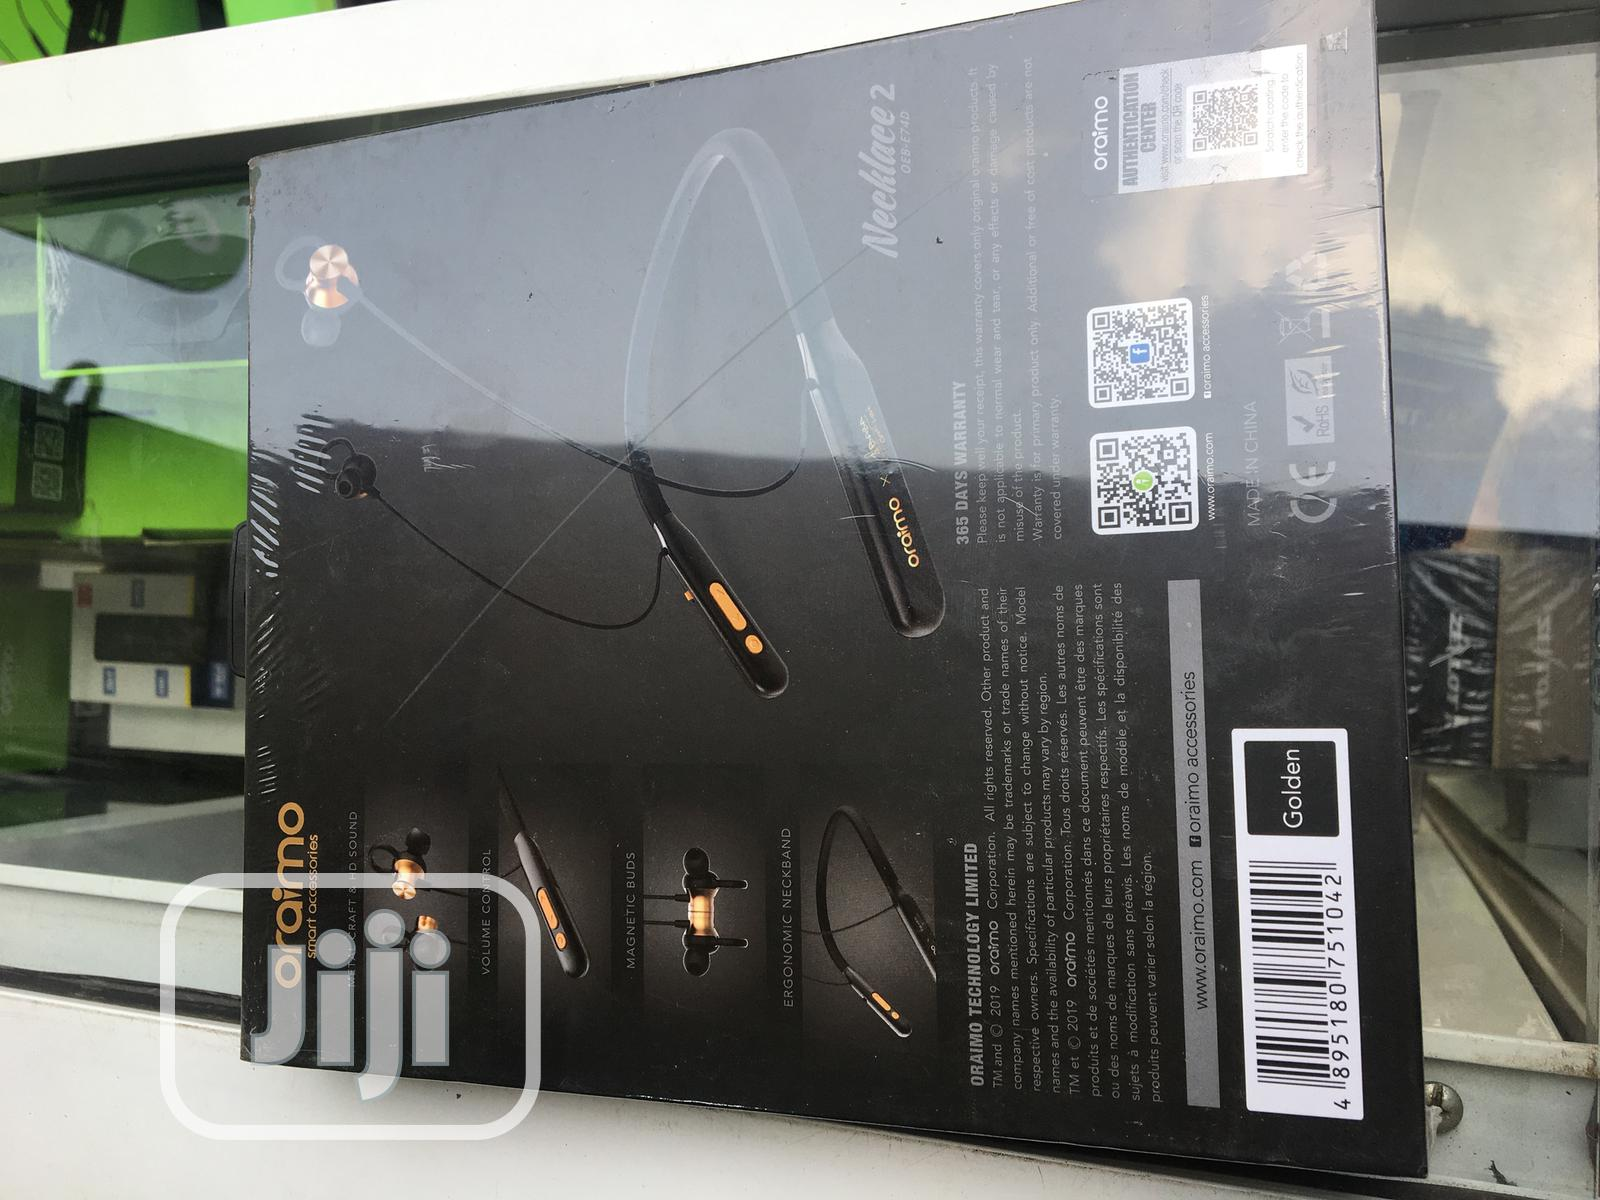 Oraimo Necklace Bluetooth 2baba Version   Accessories for Mobile Phones & Tablets for sale in Ibadan, Oyo State, Nigeria